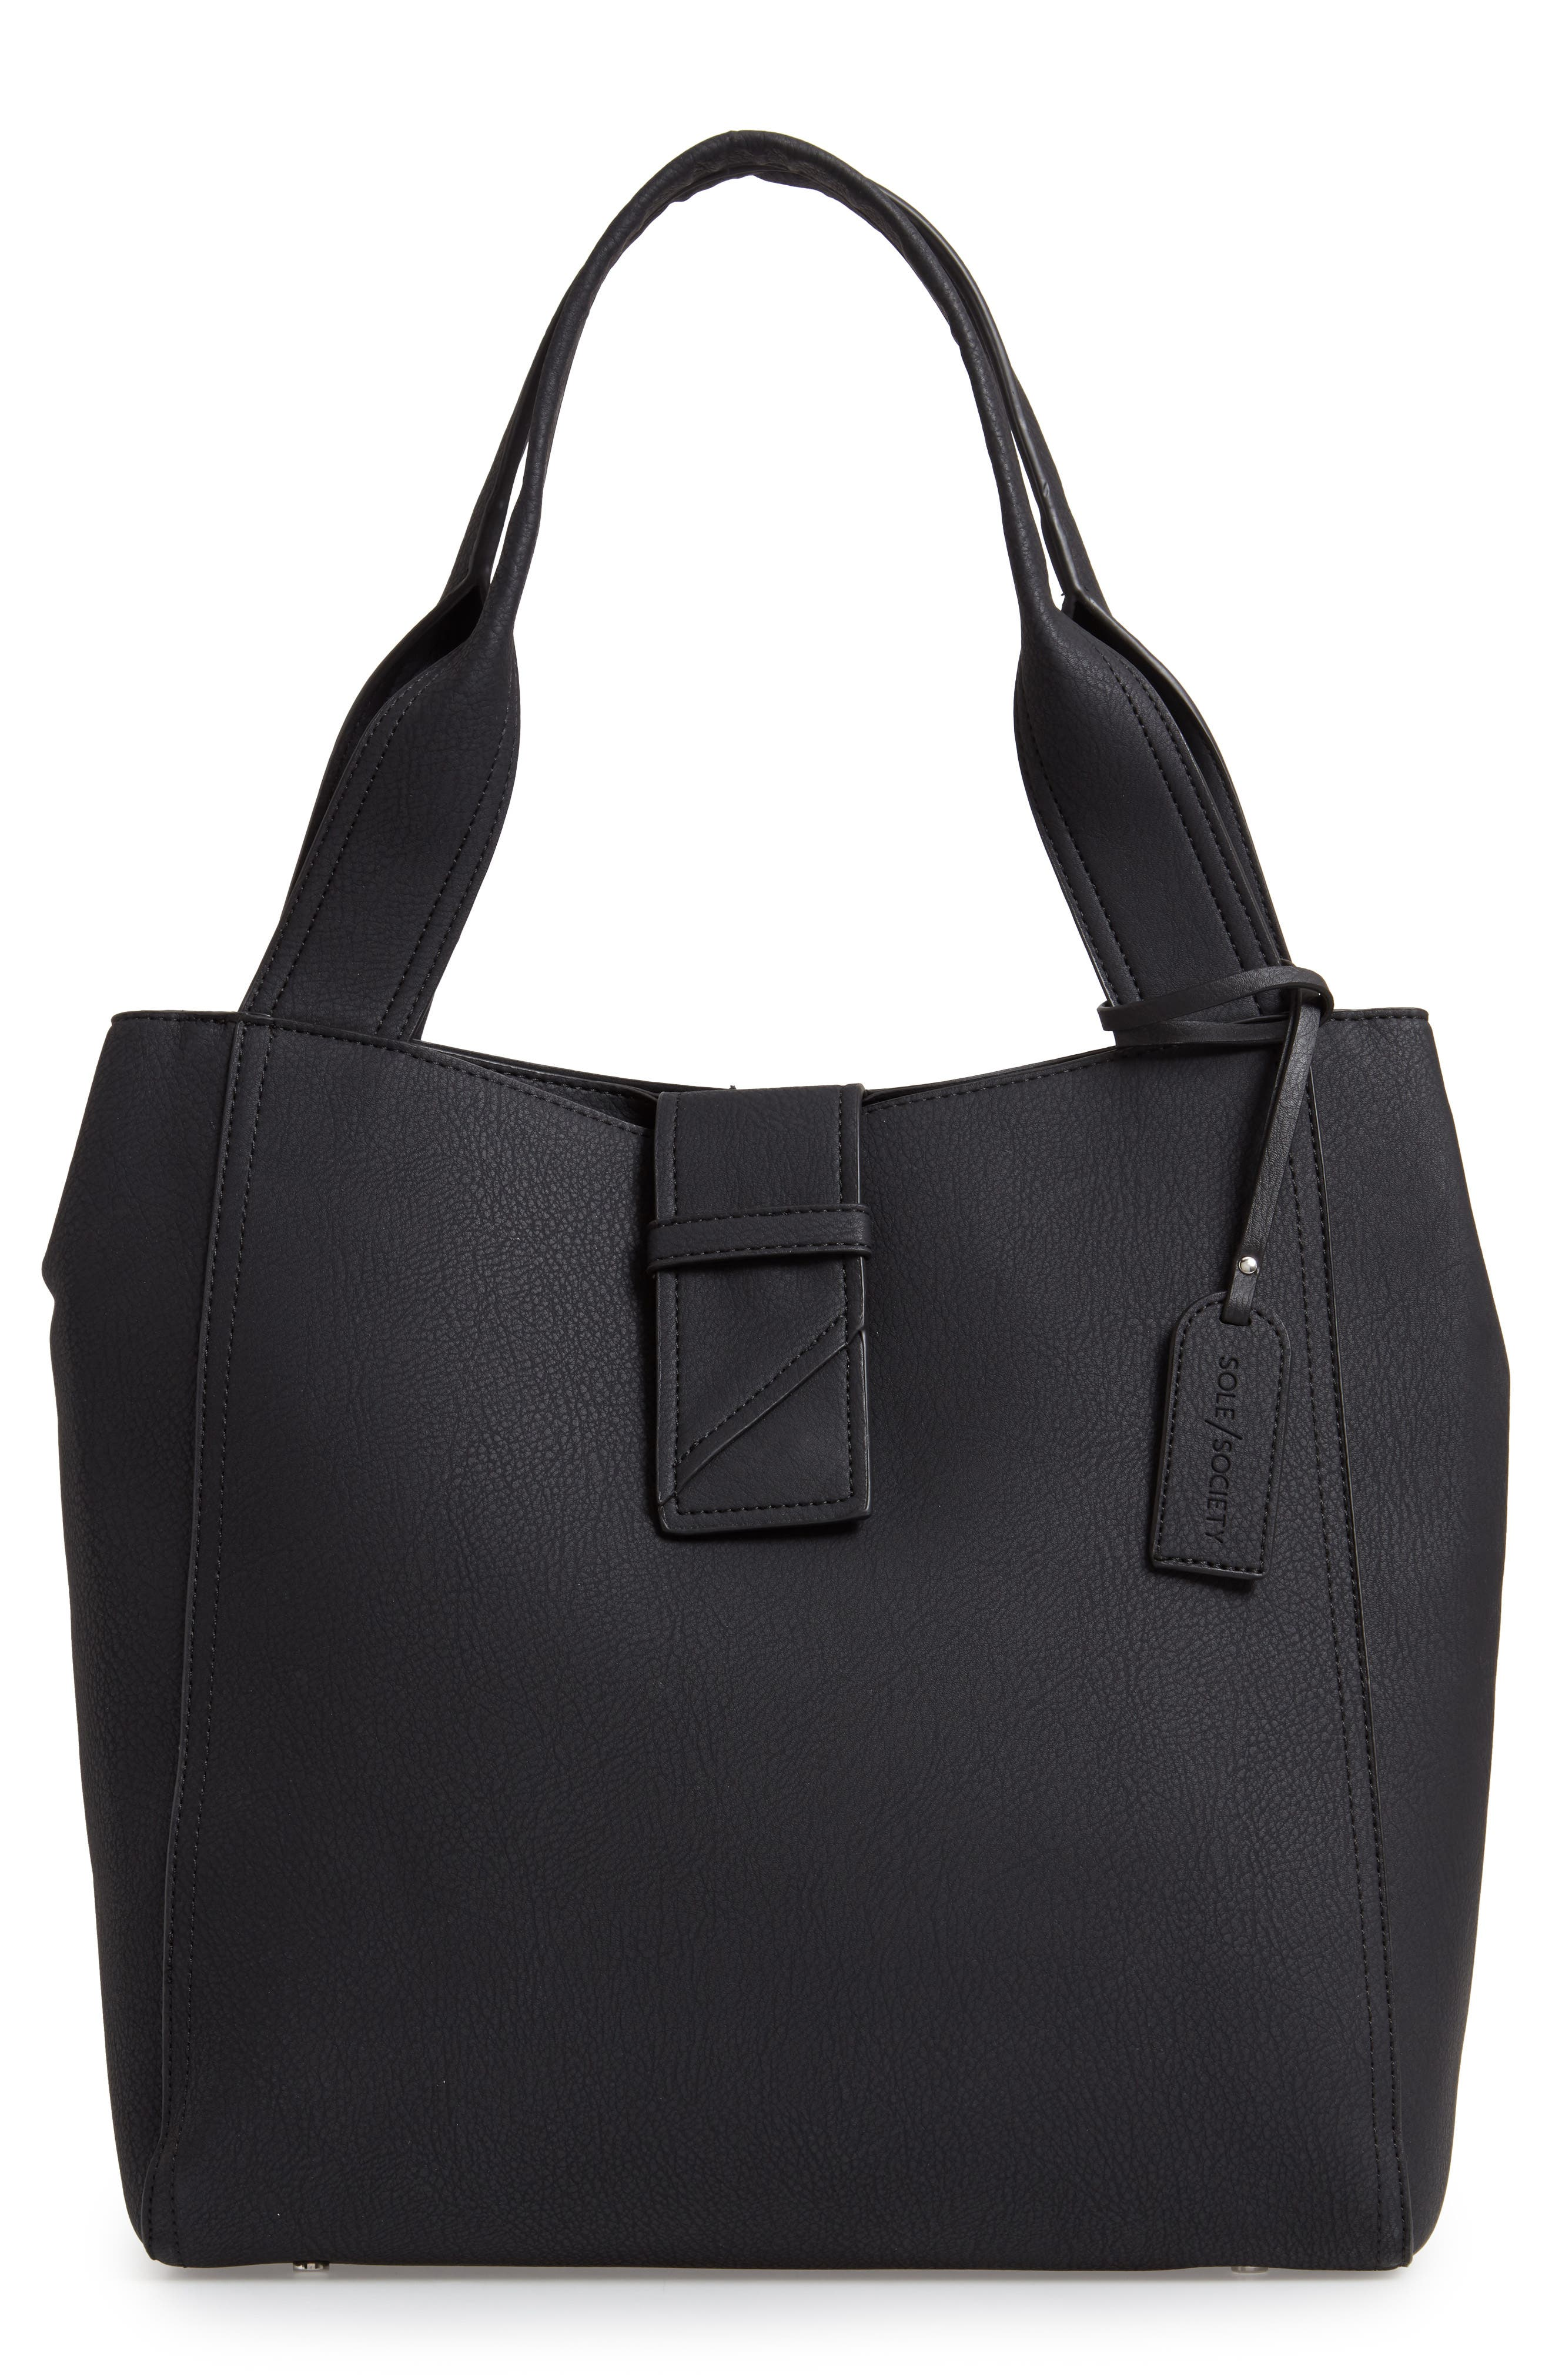 SOLE SOCIETY, Valah Faux Leather Tote, Main thumbnail 1, color, BLACK